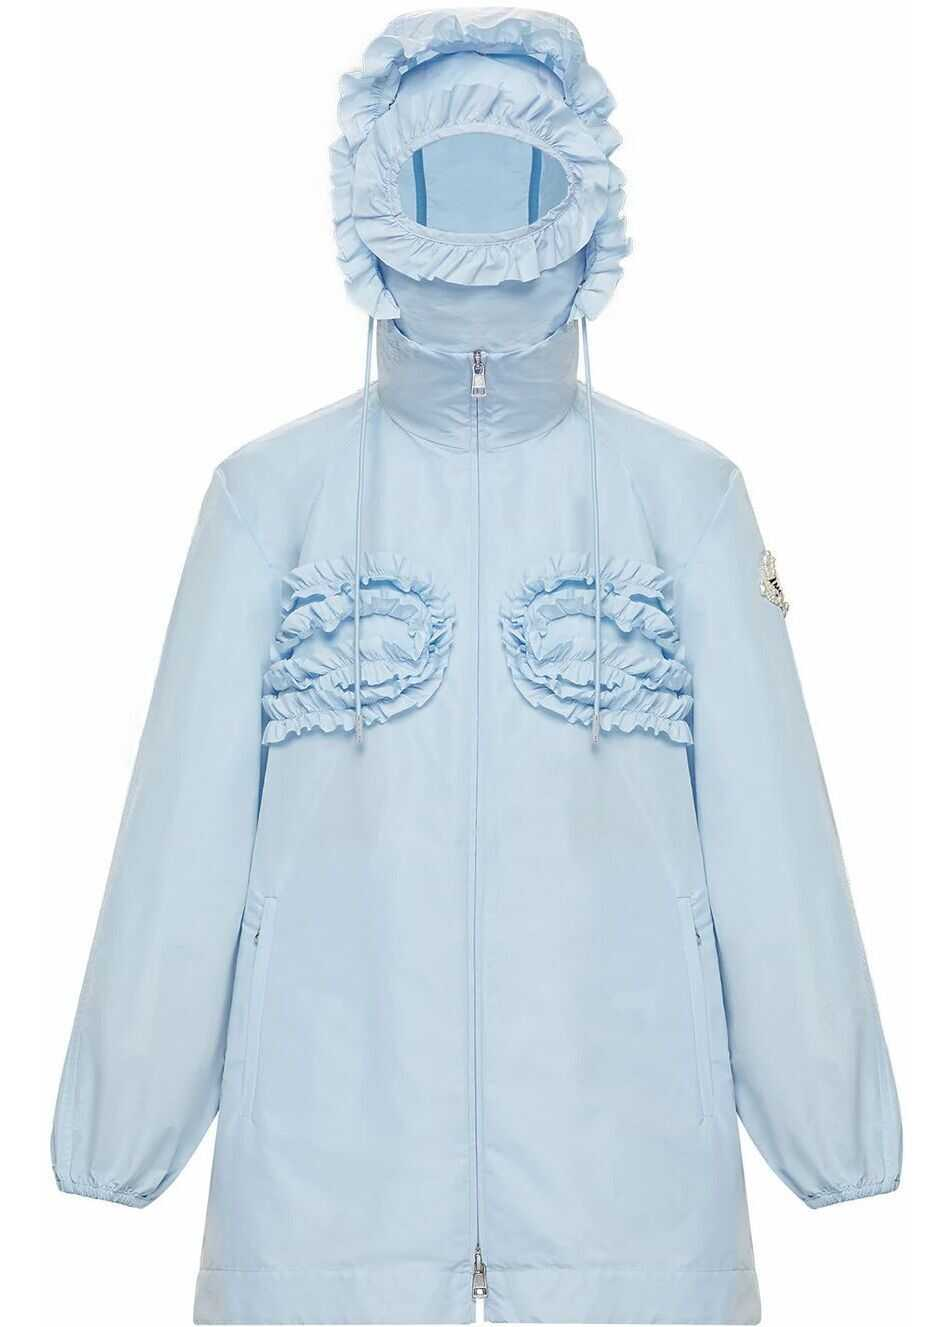 Moncler Polyester Outerwear Jacket LIGHT BLUE